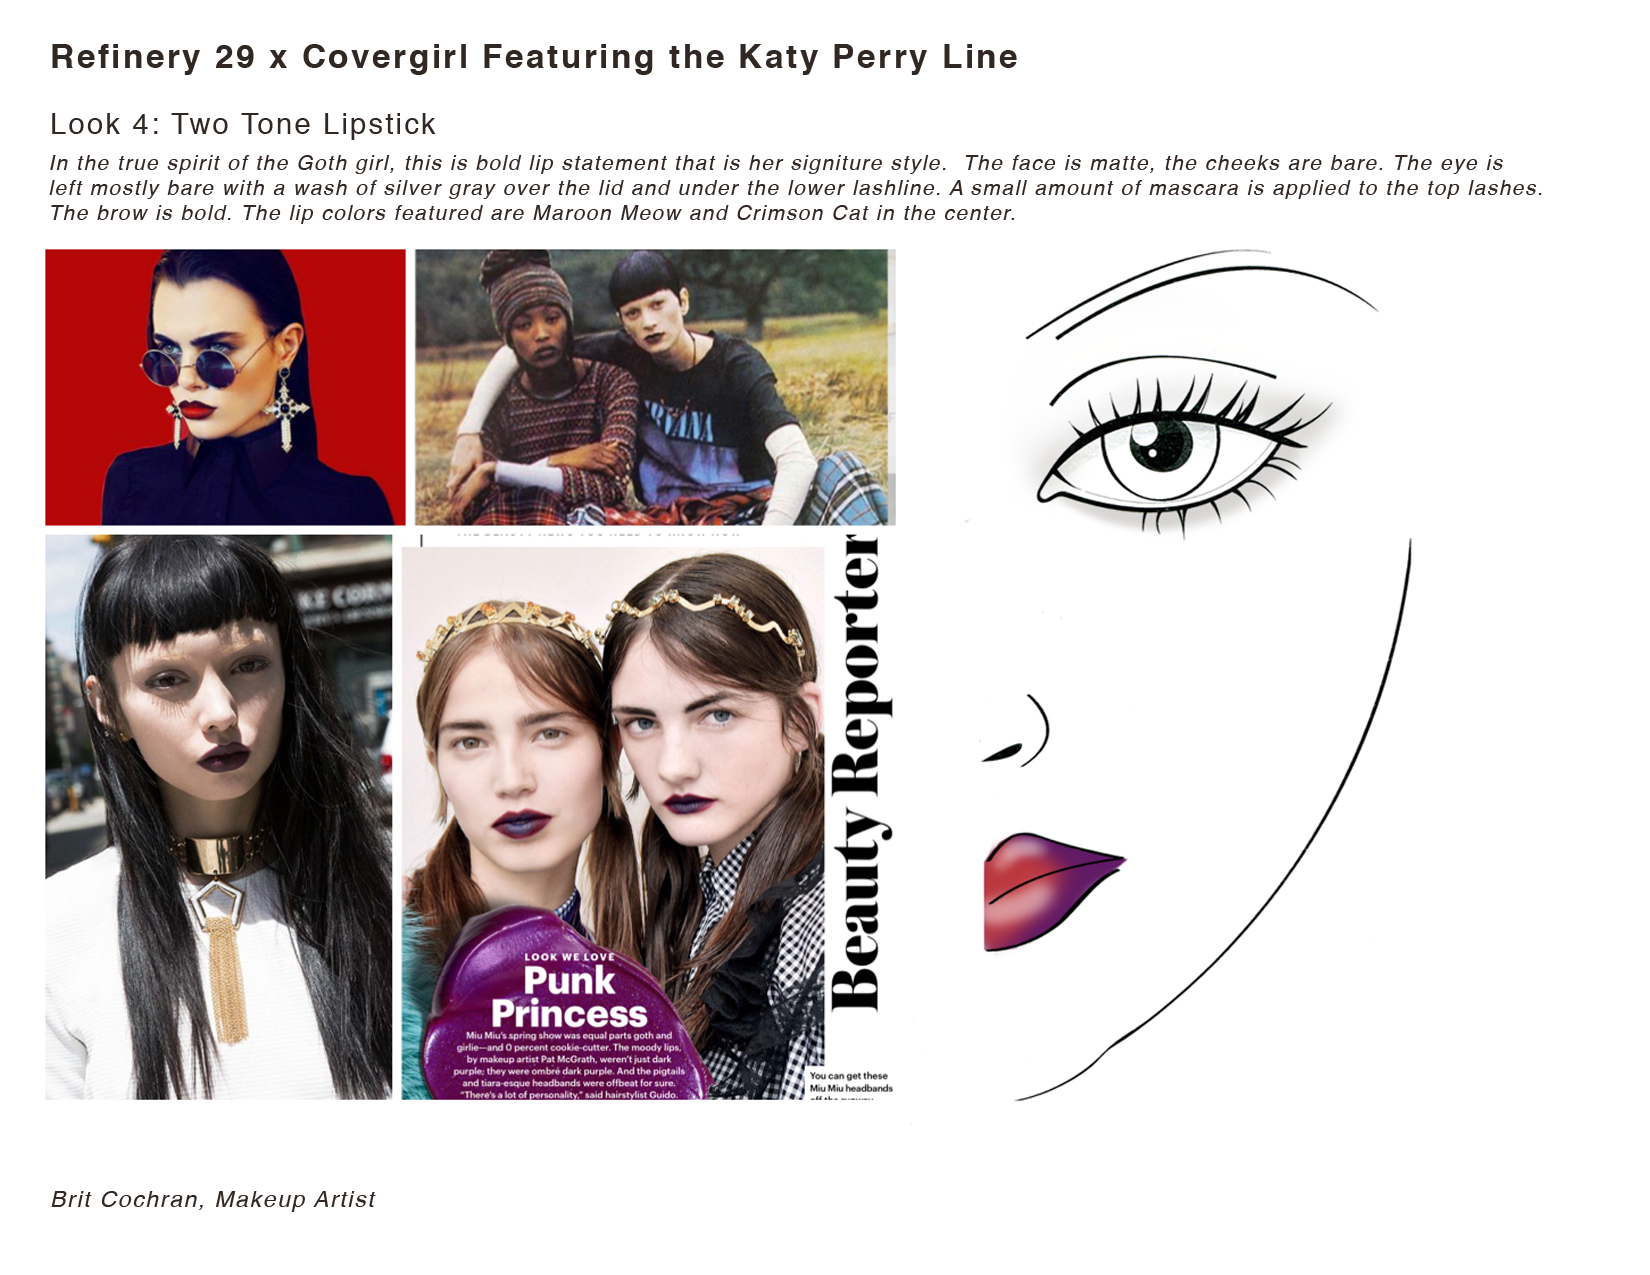 Refinery29_Covergirl_KatyPerry_Looks-4.png